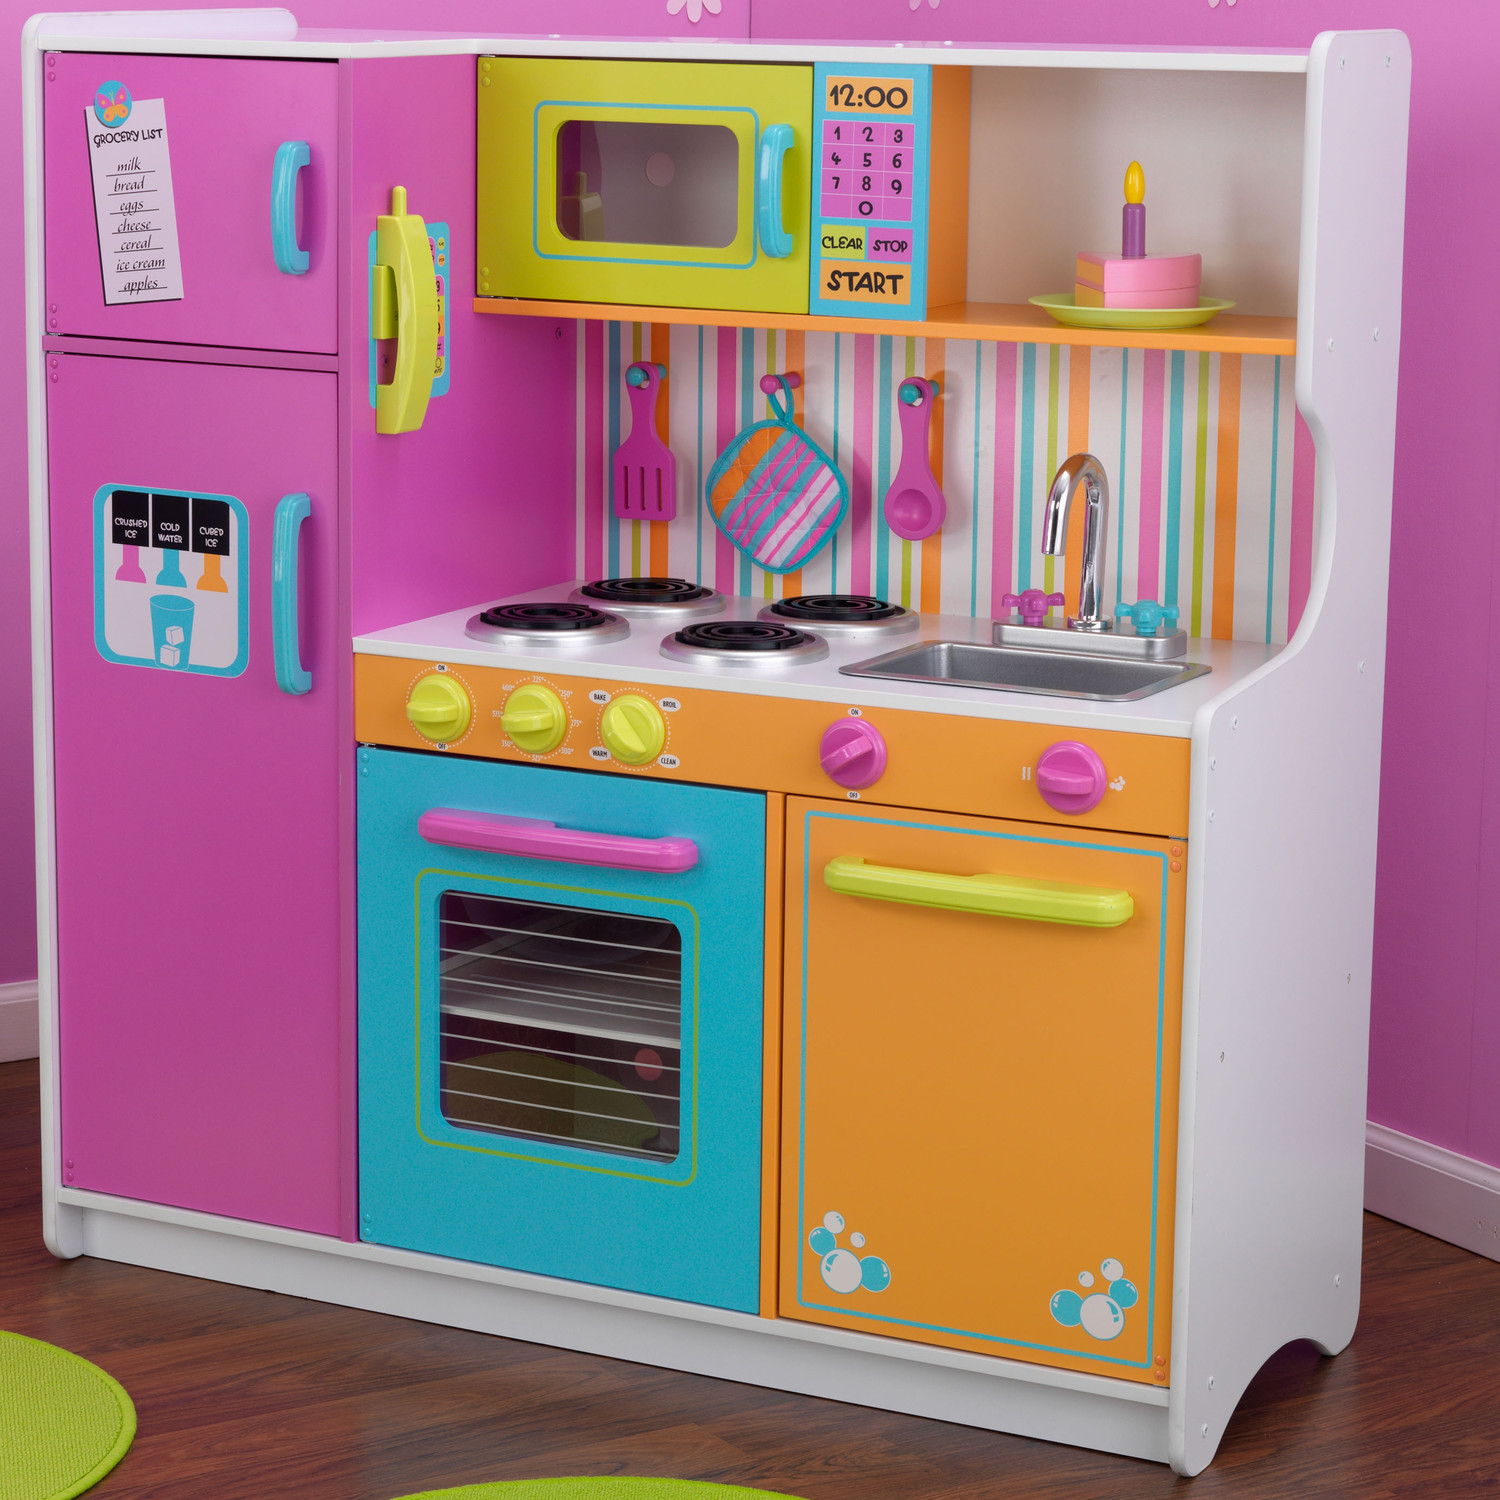 Indigo canada toy sale save 59 off kidkraft deluxe for Cheap kids kitchen set